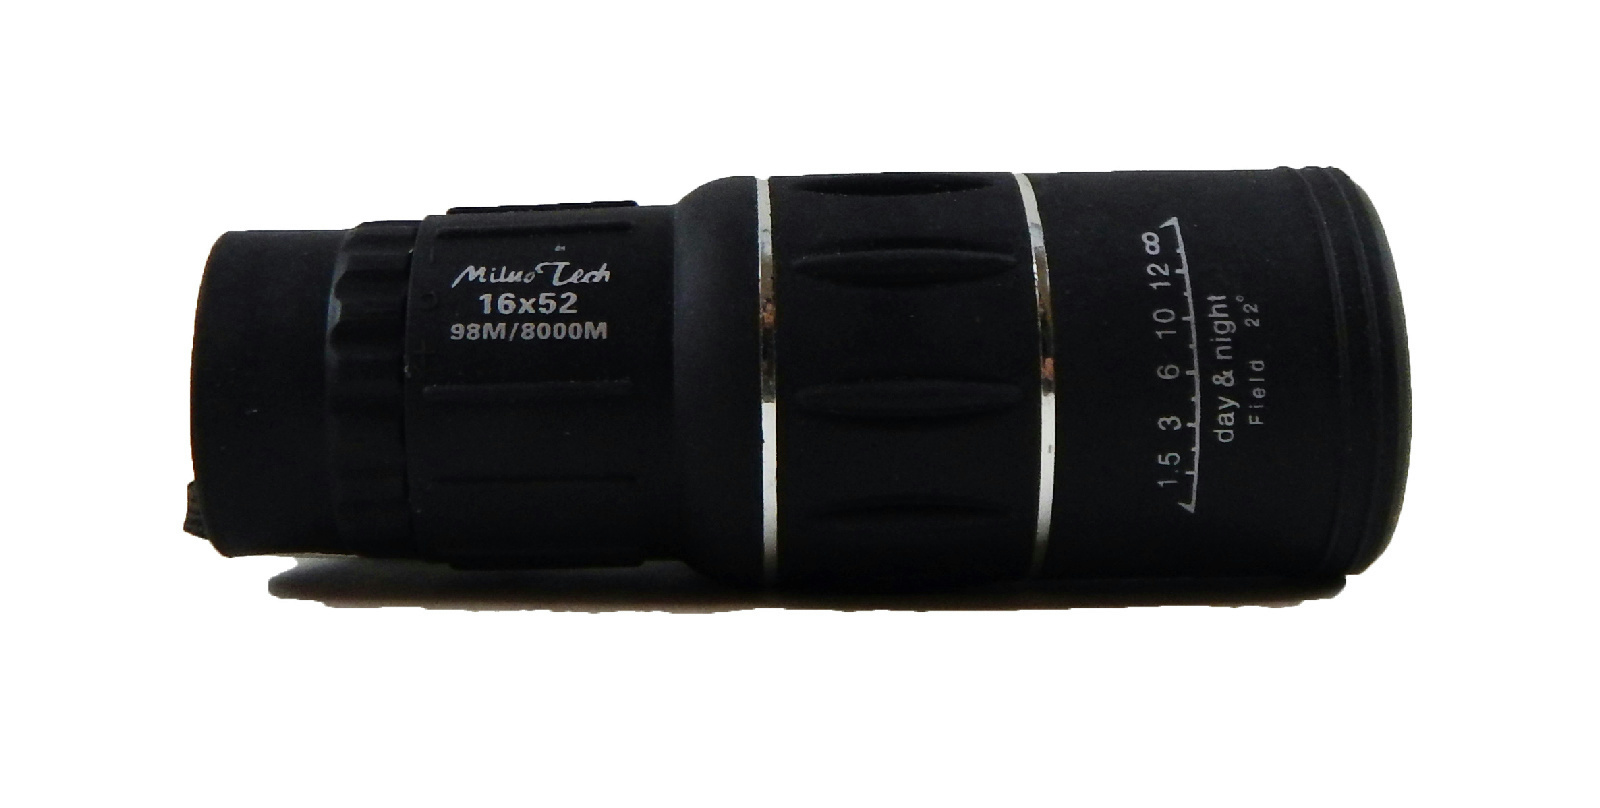 Miluo tech 16x52 zoom dual focus lens optics portable monocular